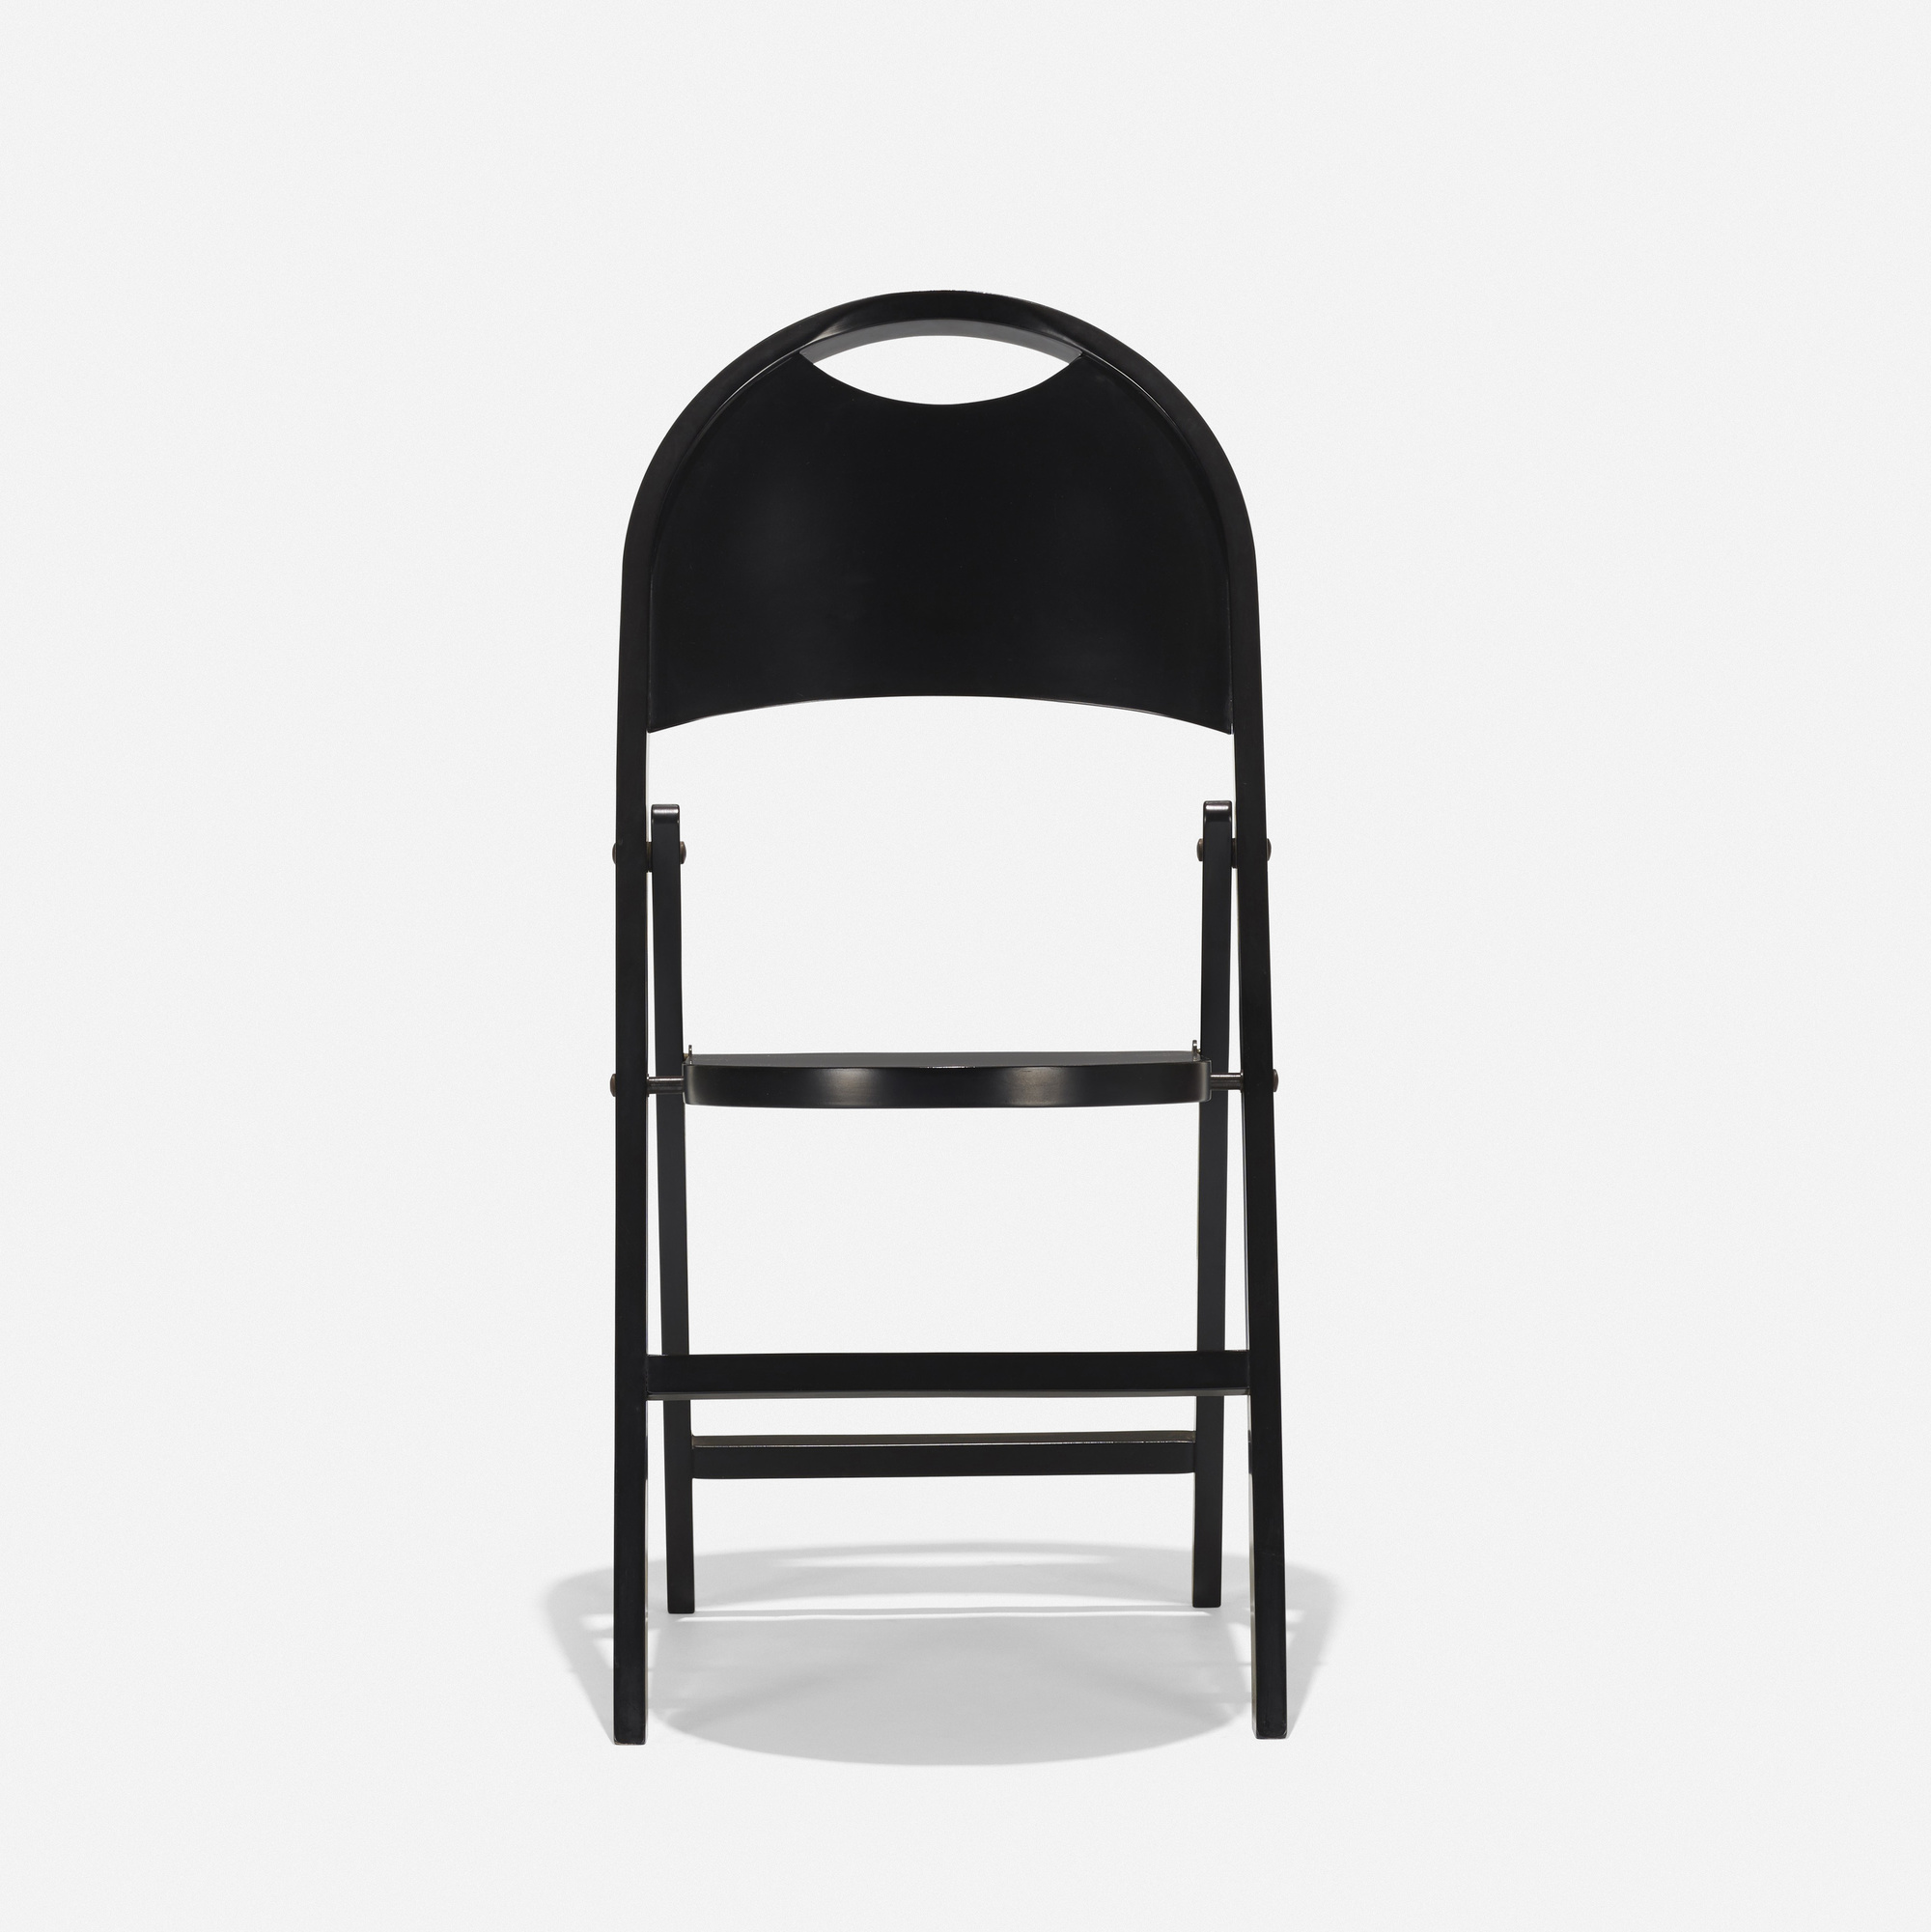 426: Achille and Pier Giacomo Castiglioni / Tric folding chair (2 of 3)